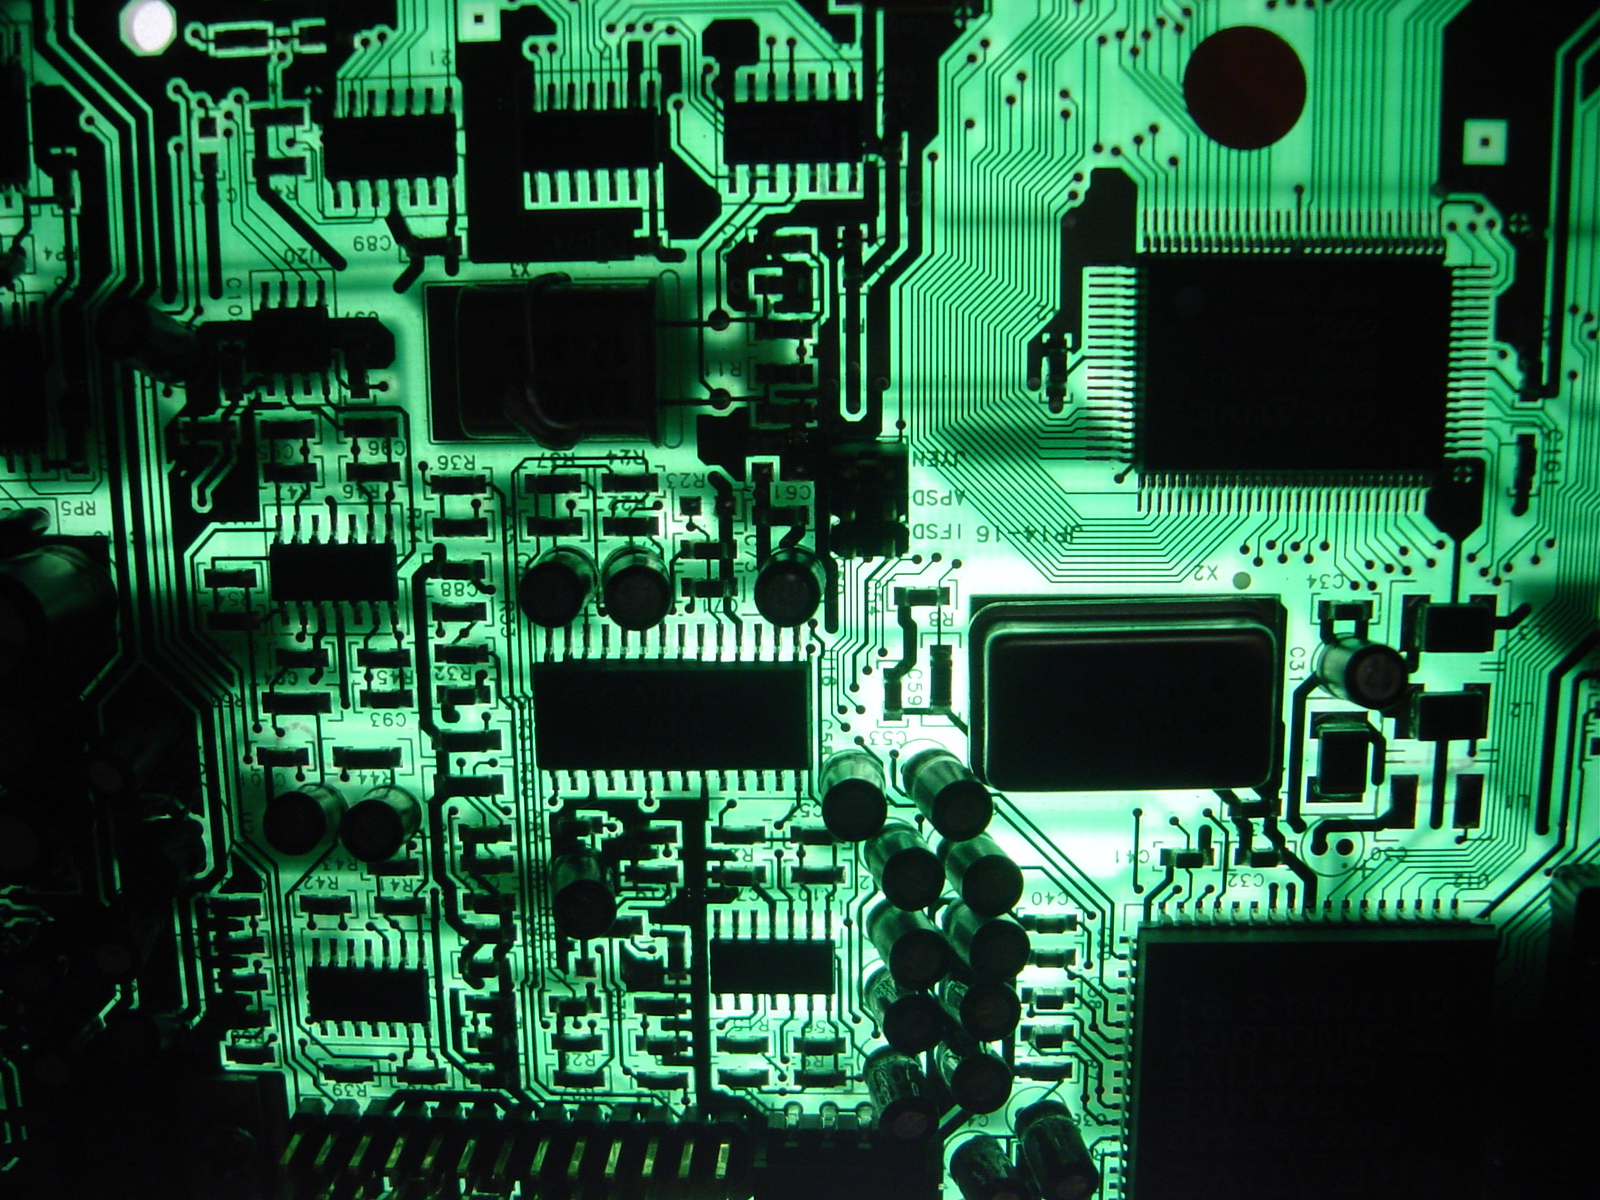 Tips Warnings Soldering Process For Bare Copper Wire Leads To Pcb Electronic Circuit Design So It Is Very Important That You Know The Different Angles On Underside Of Board Hold Them In Place